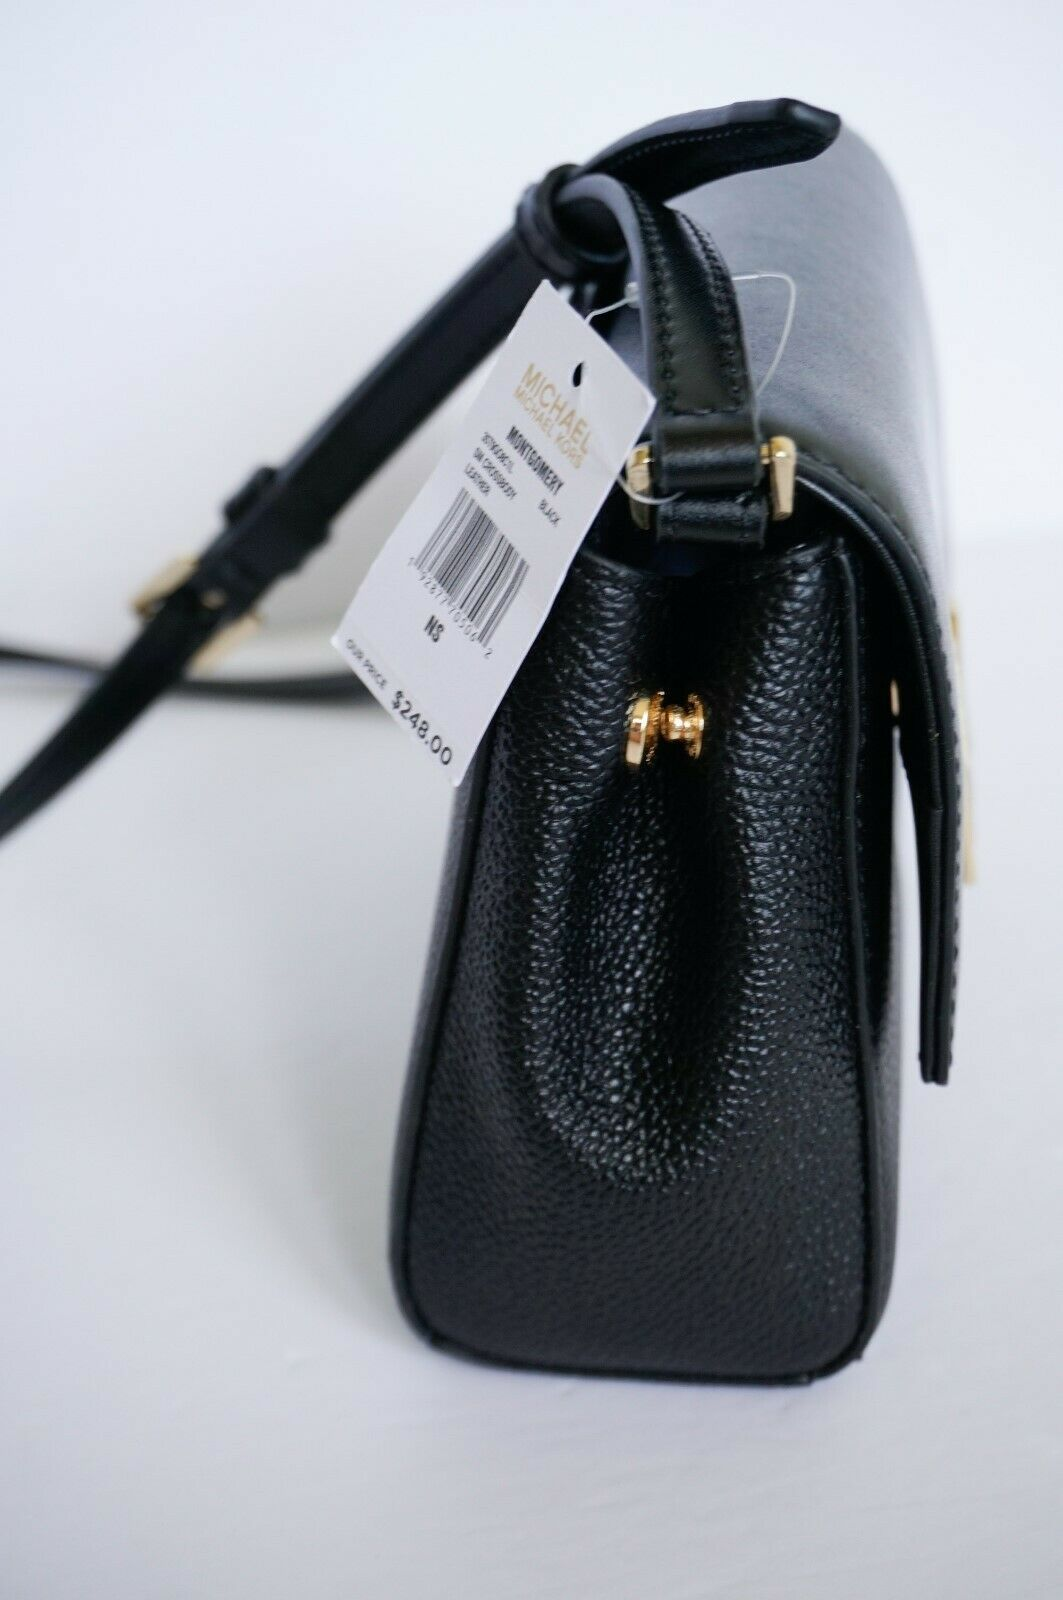 NWT MICHAEL KORS MONTGOMERY SMALL LEATHER CROSSBODY BAG BLACK image 11